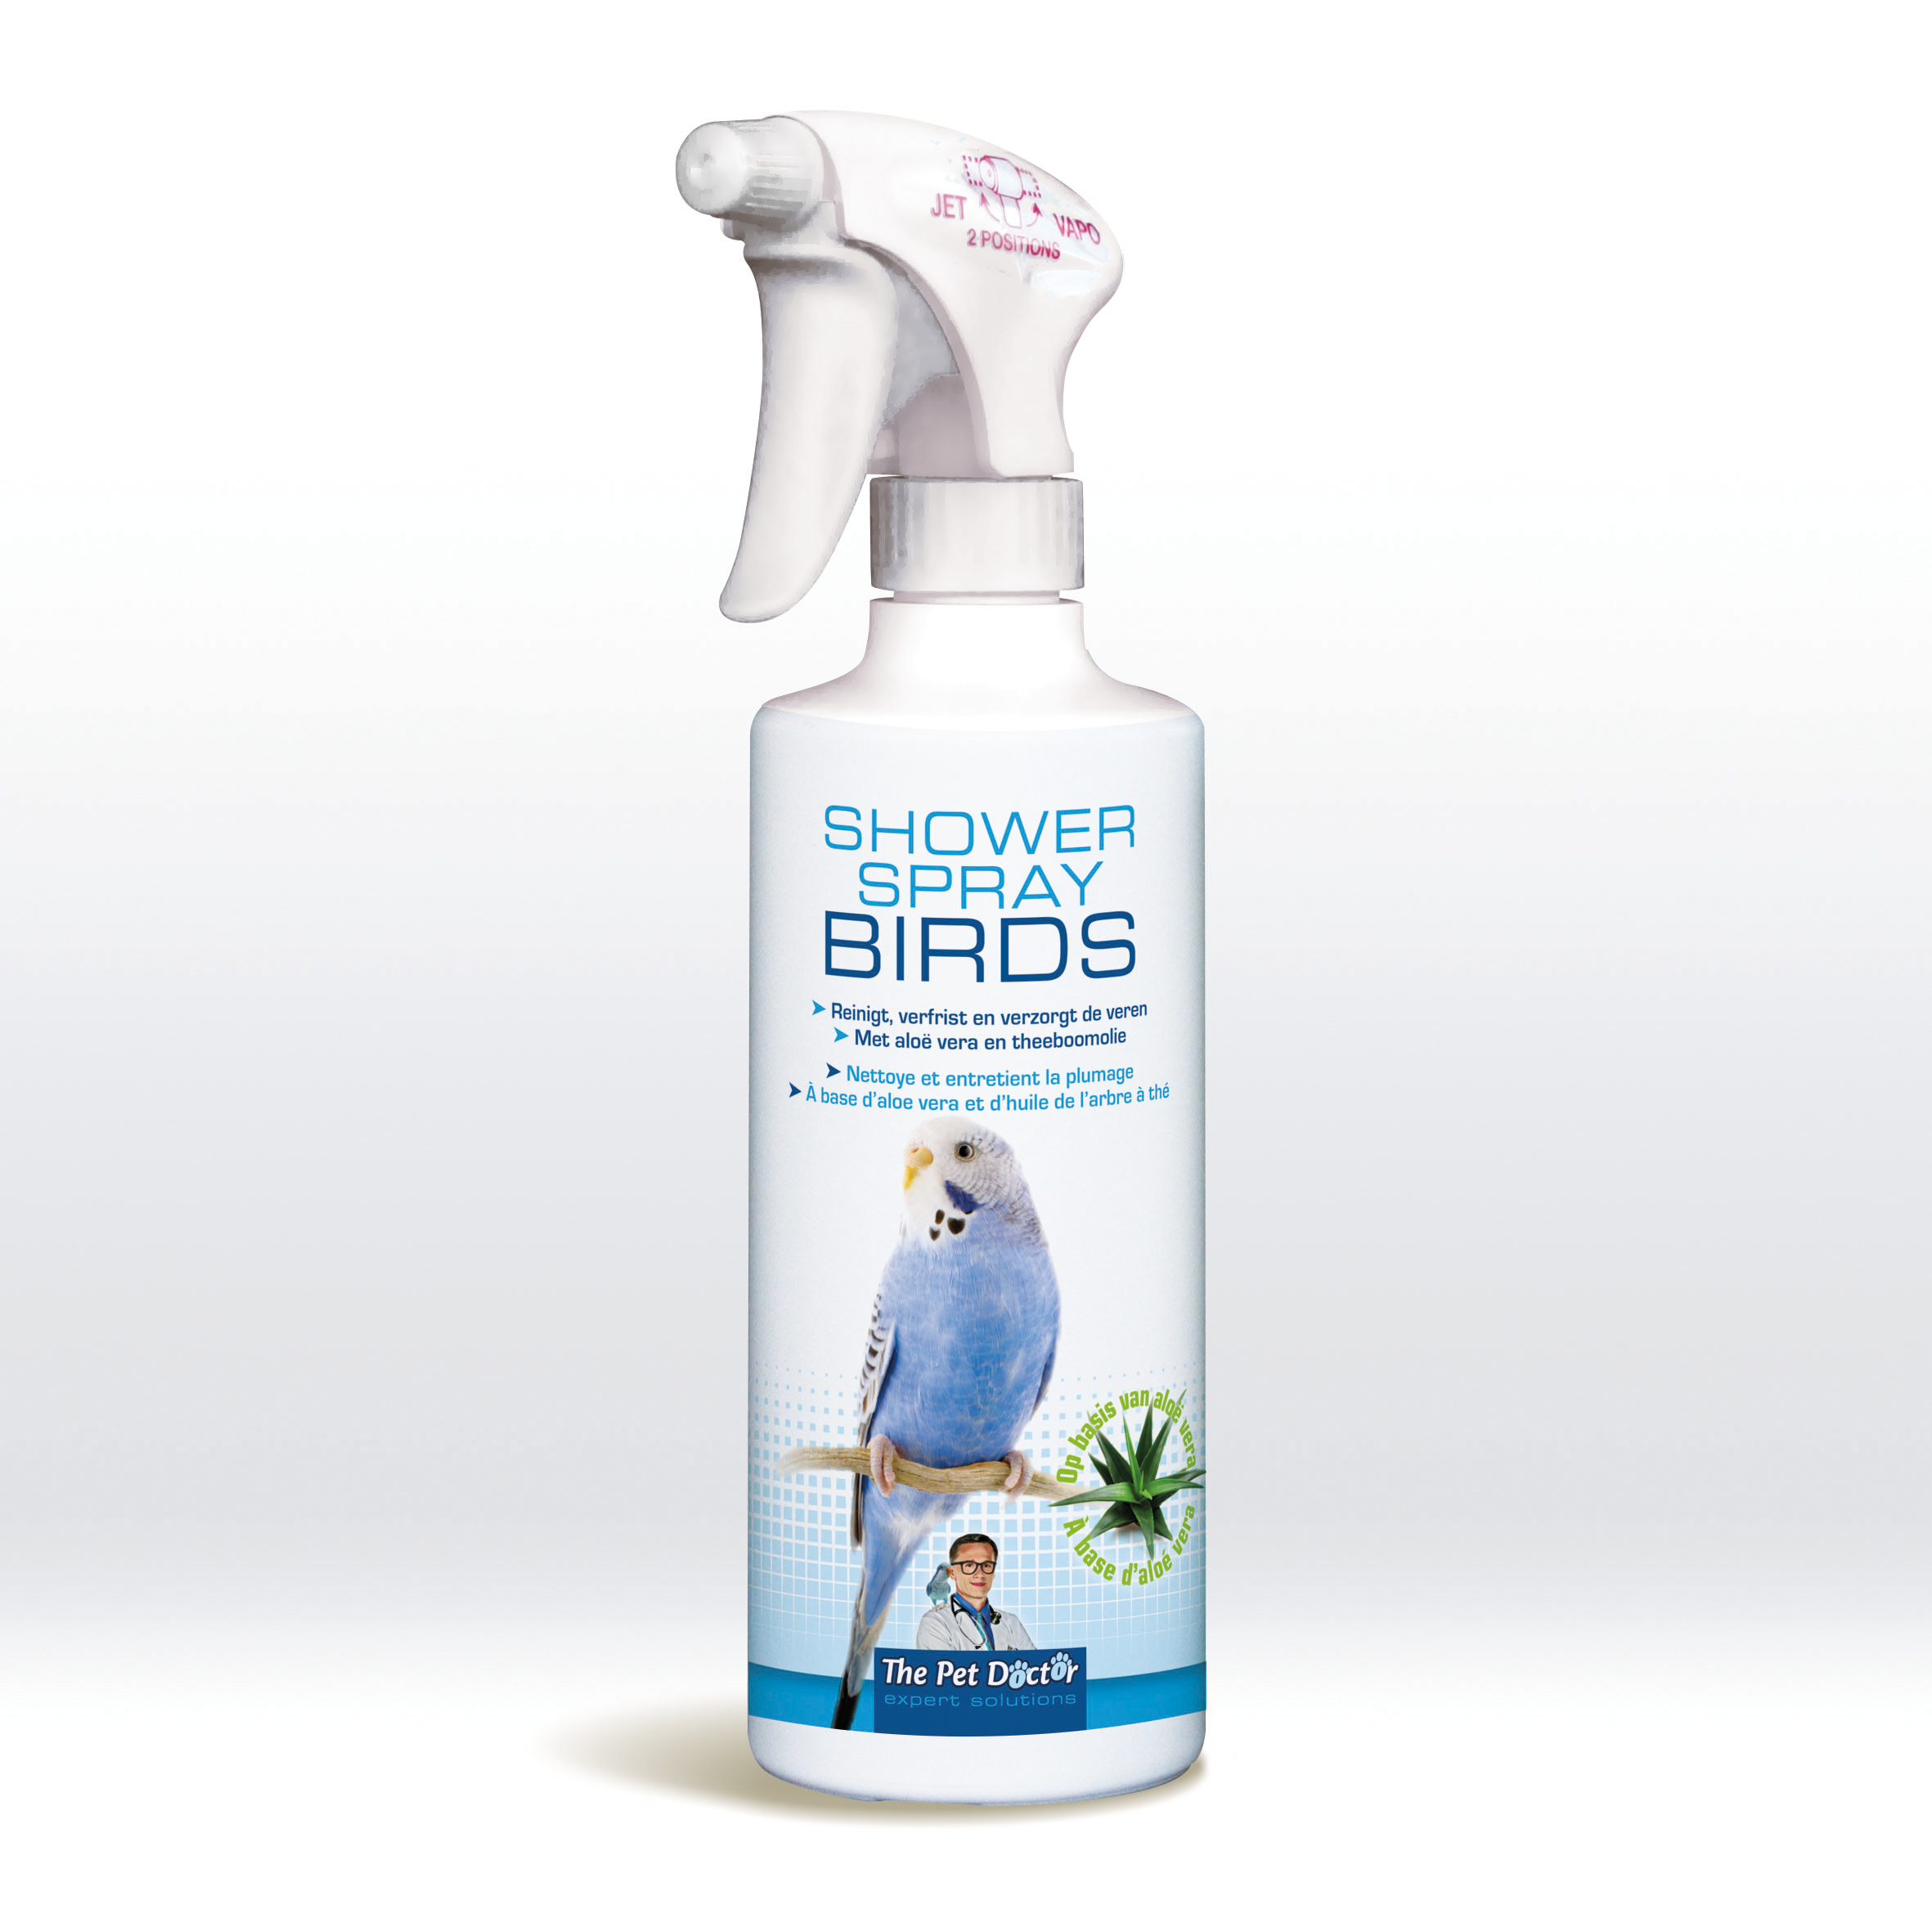 The Pet Doctor Bird Shower 500 ml image